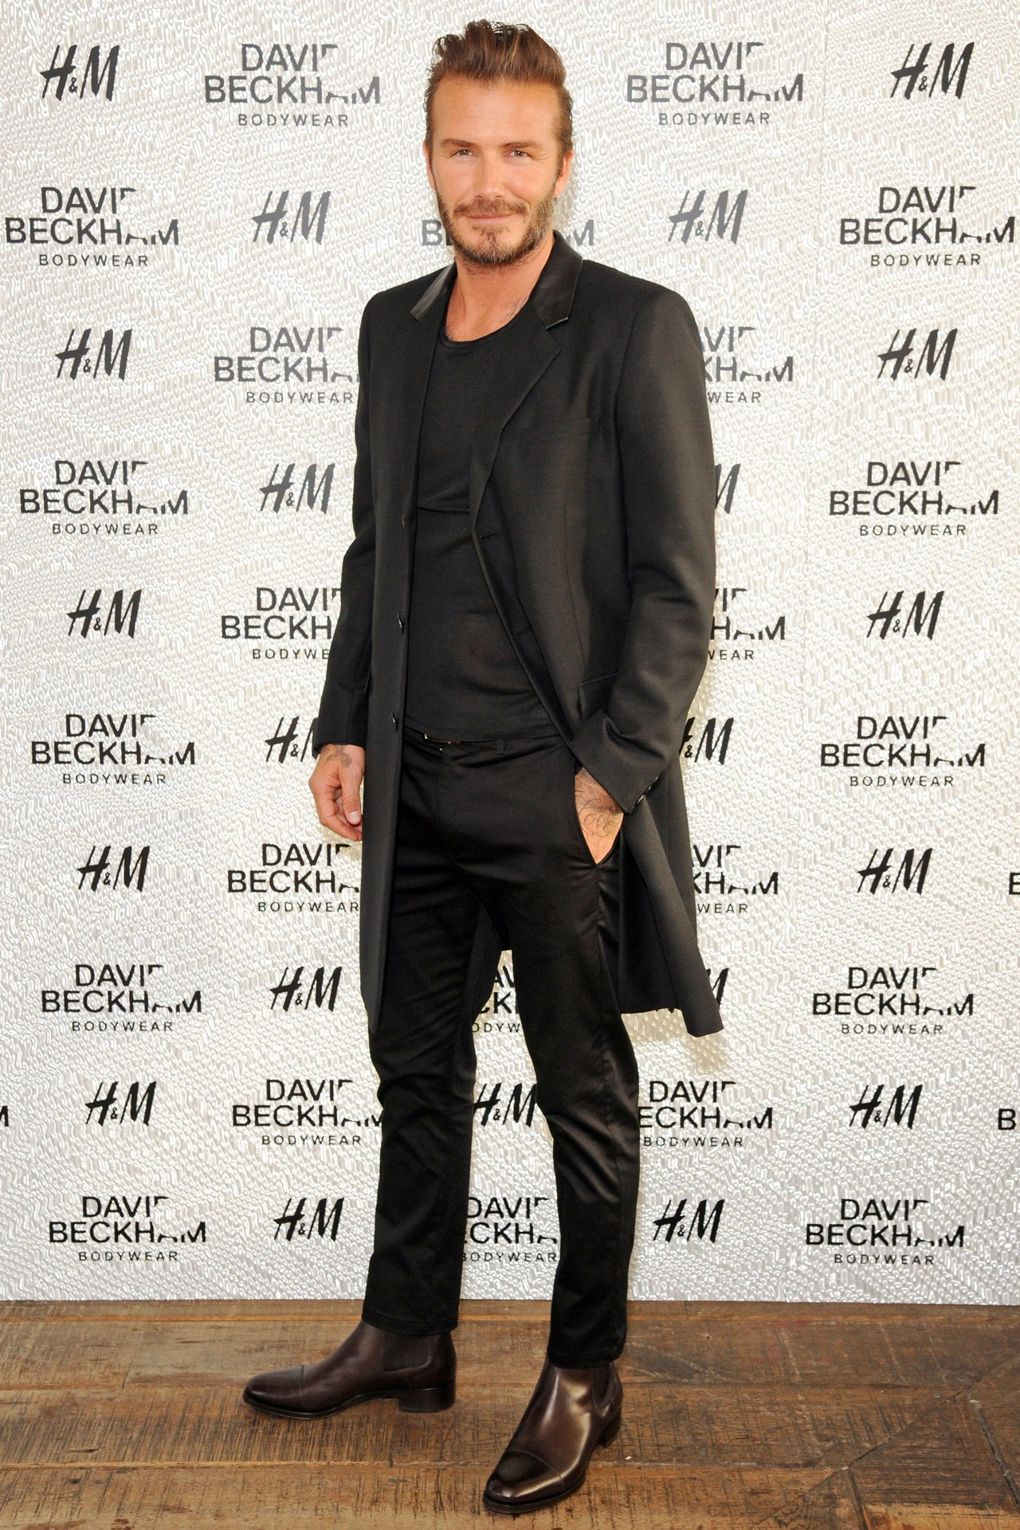 outlet store 6f2ac 60252 From footballer to fashion icon, look back at David Beckhams style history